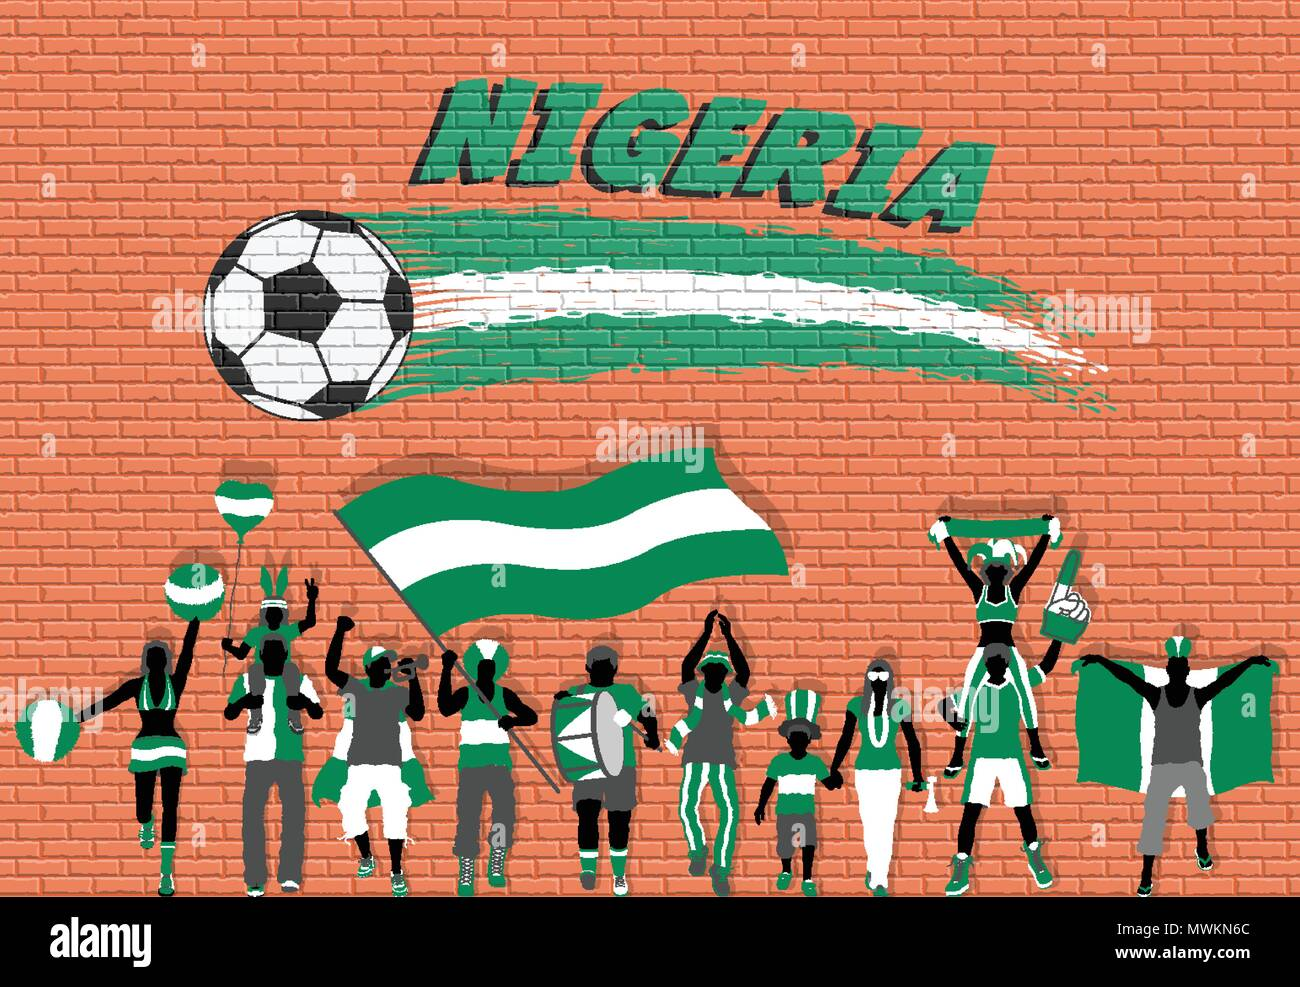 Nigerian football fans cheering with Nigeria flag colors in front of soccer ball graffiti. All the objects are in different layers and the text types  - Stock Vector